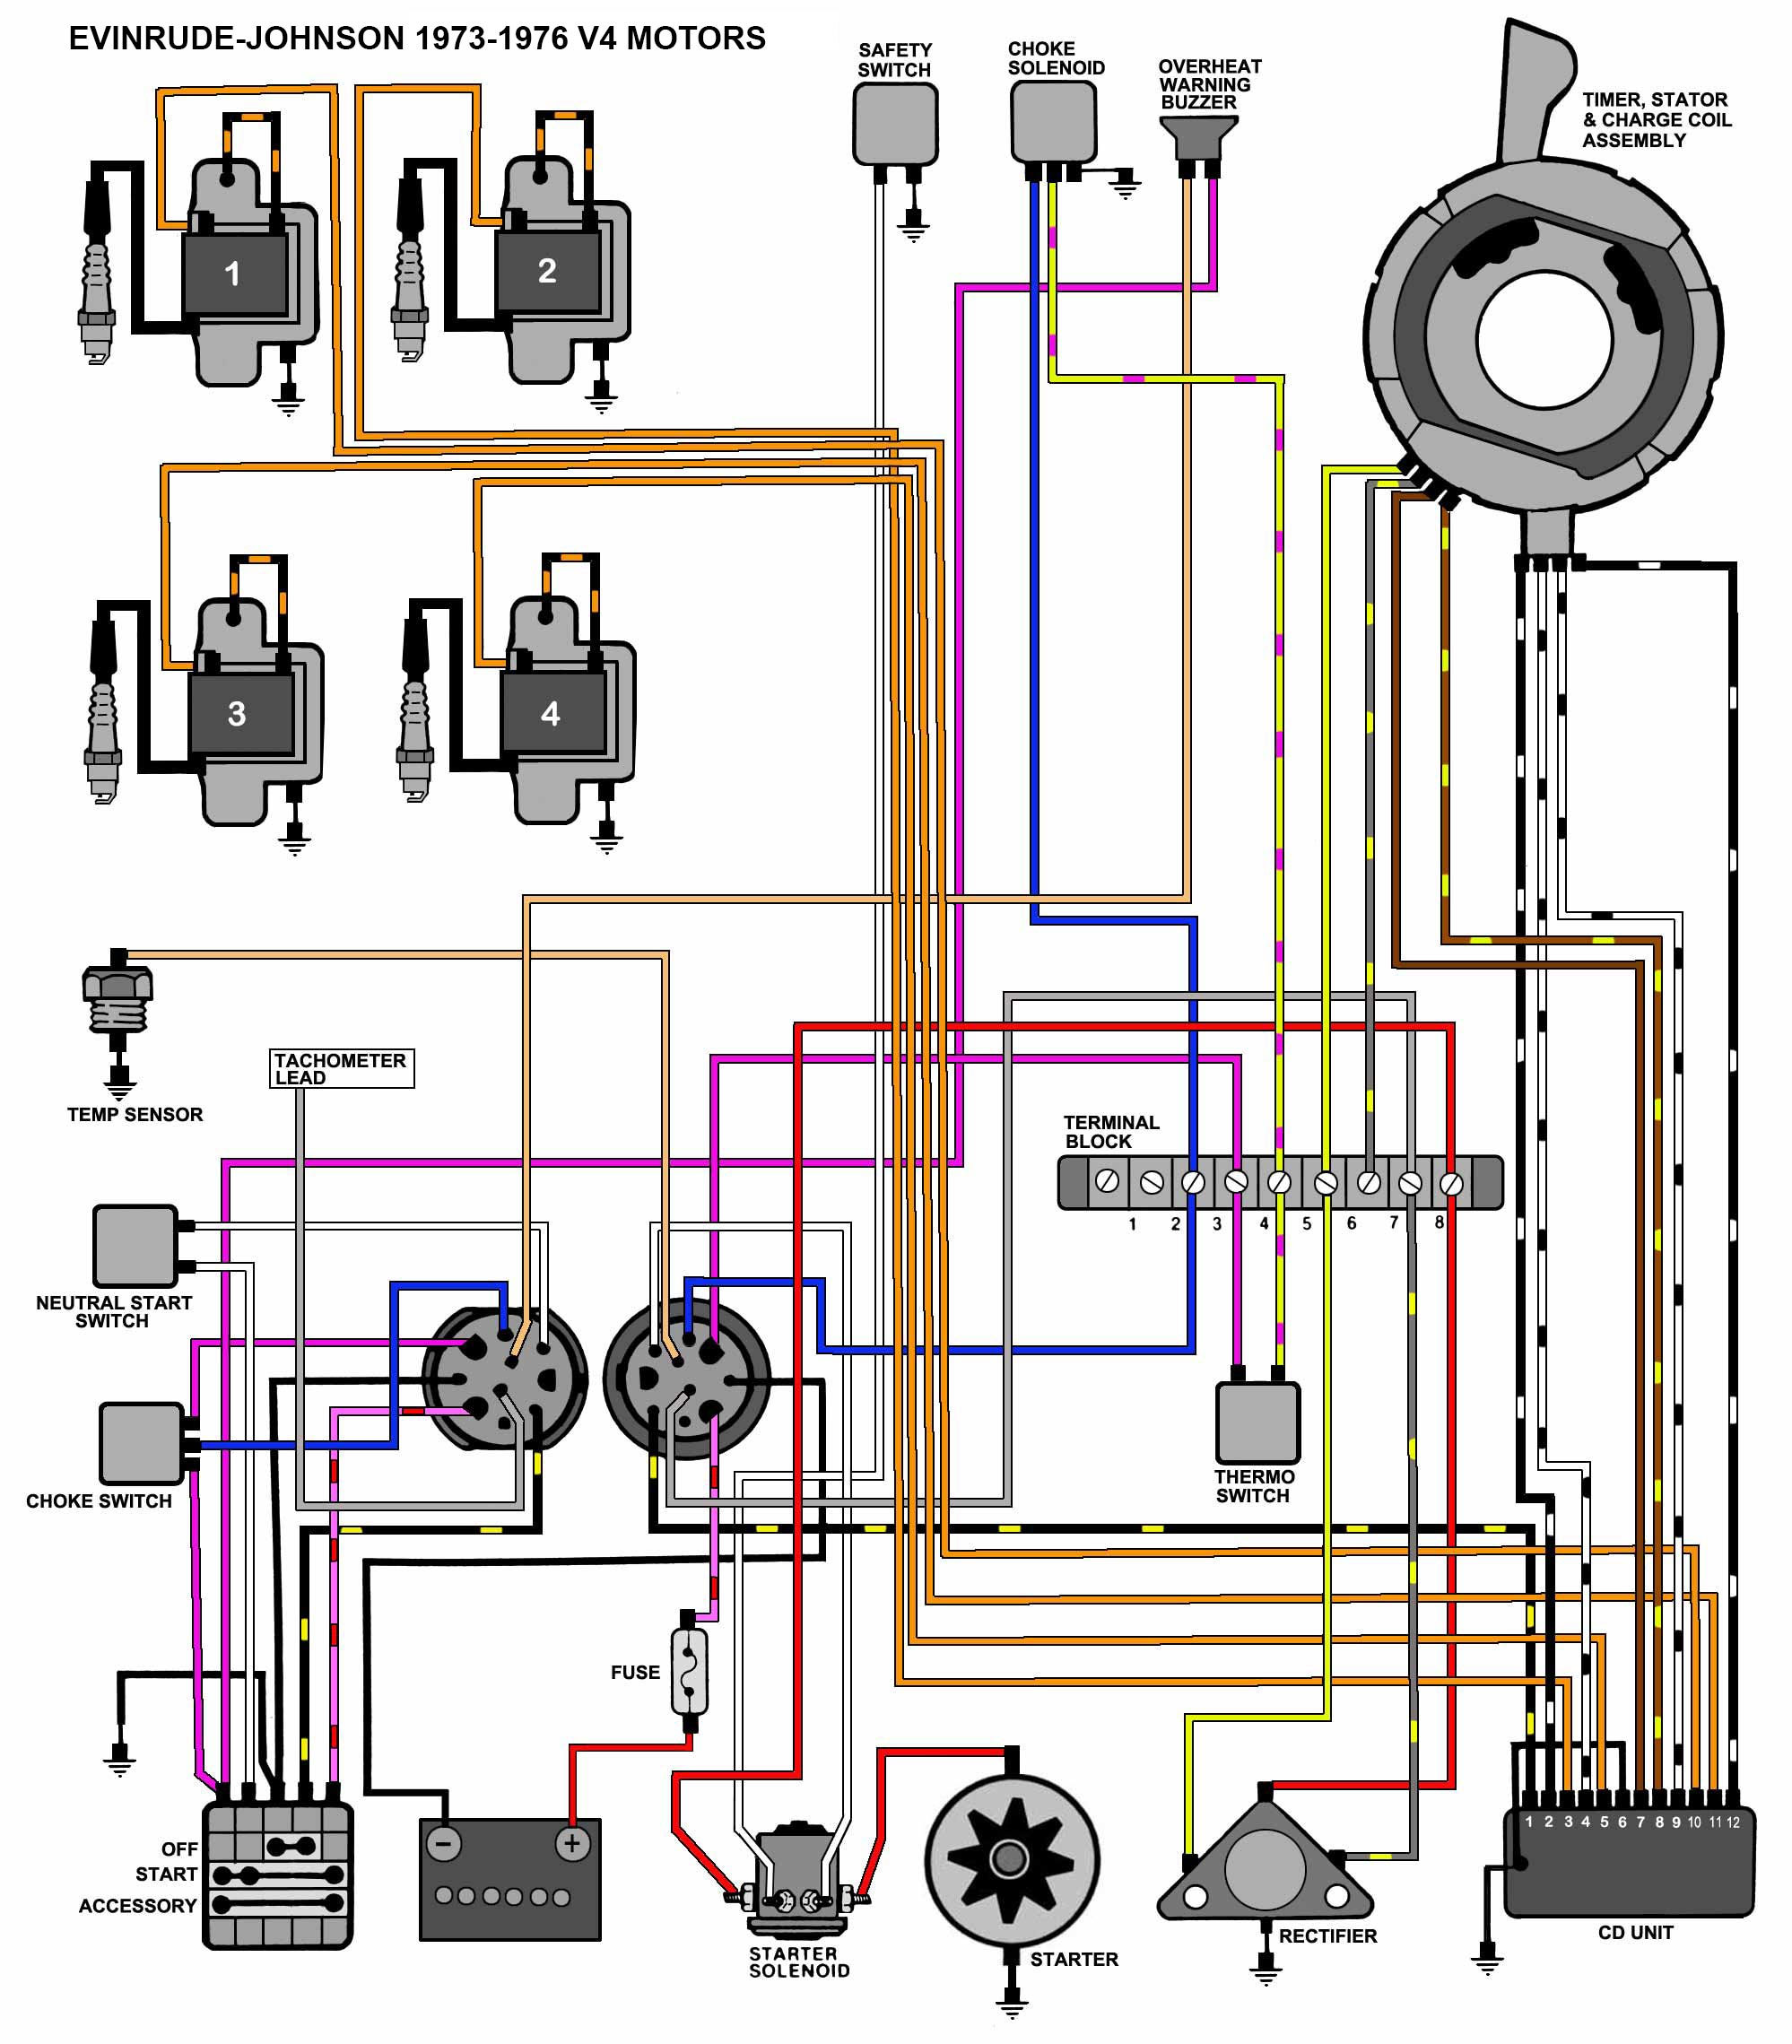 48 Hp Evinrude Wiring Diagram Starting Know About Powerwinch Johnson Outboard Motor Explained Diagrams Rh Sbsun Co